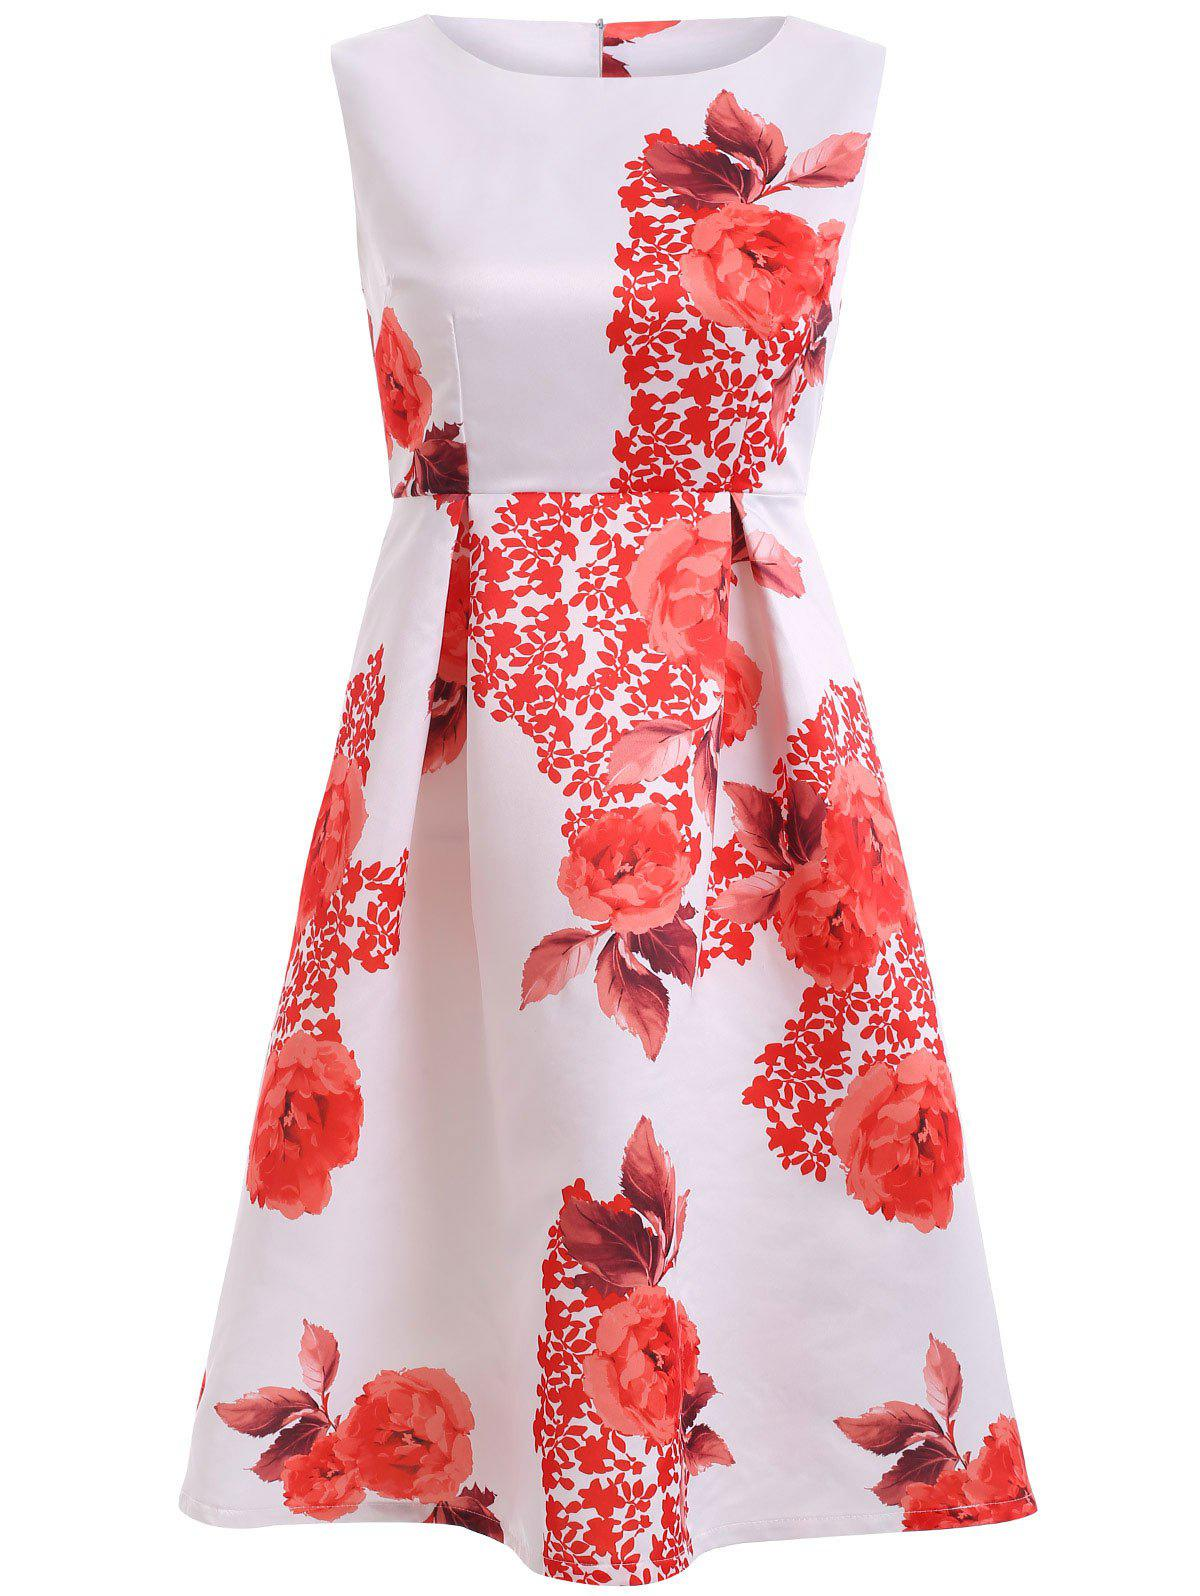 Sweet Women's Floral Print High Waist Flare Dress - WHITE XL